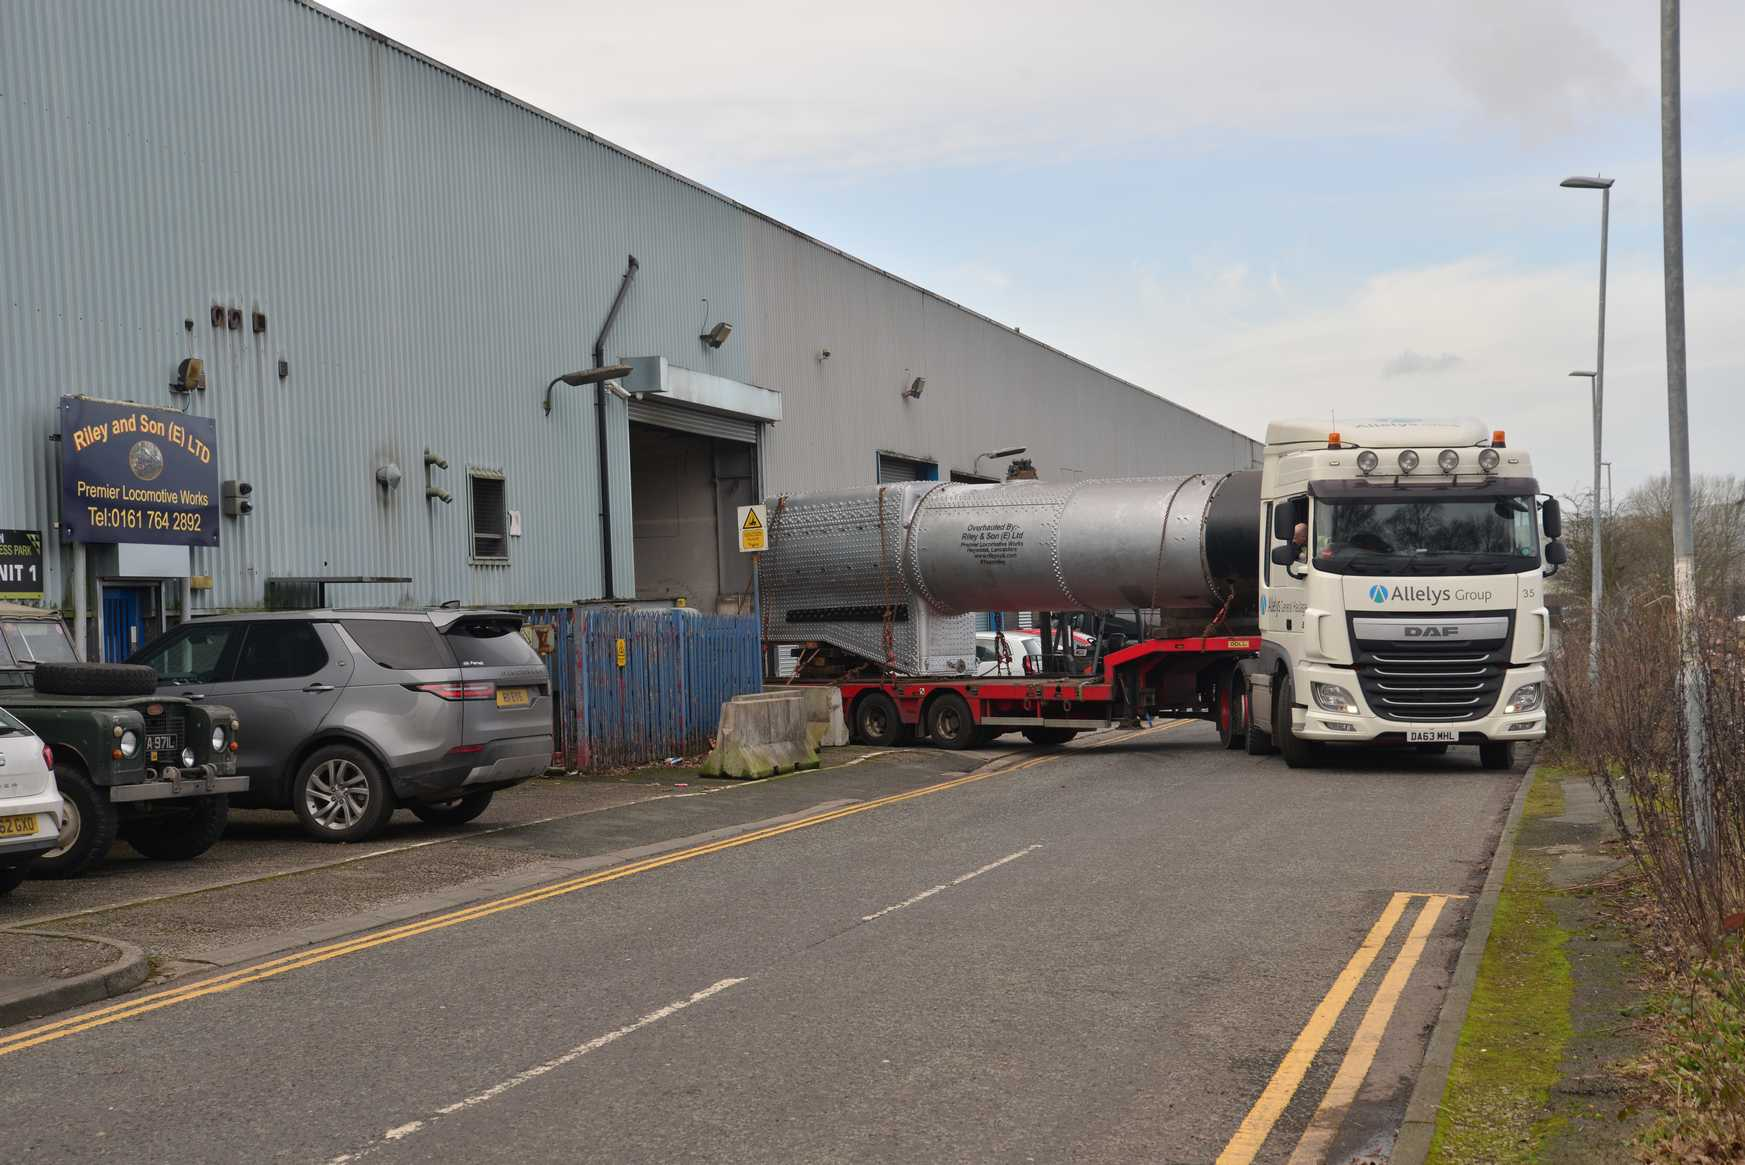 The boiler heads away from Riley's works. © Ken Hill